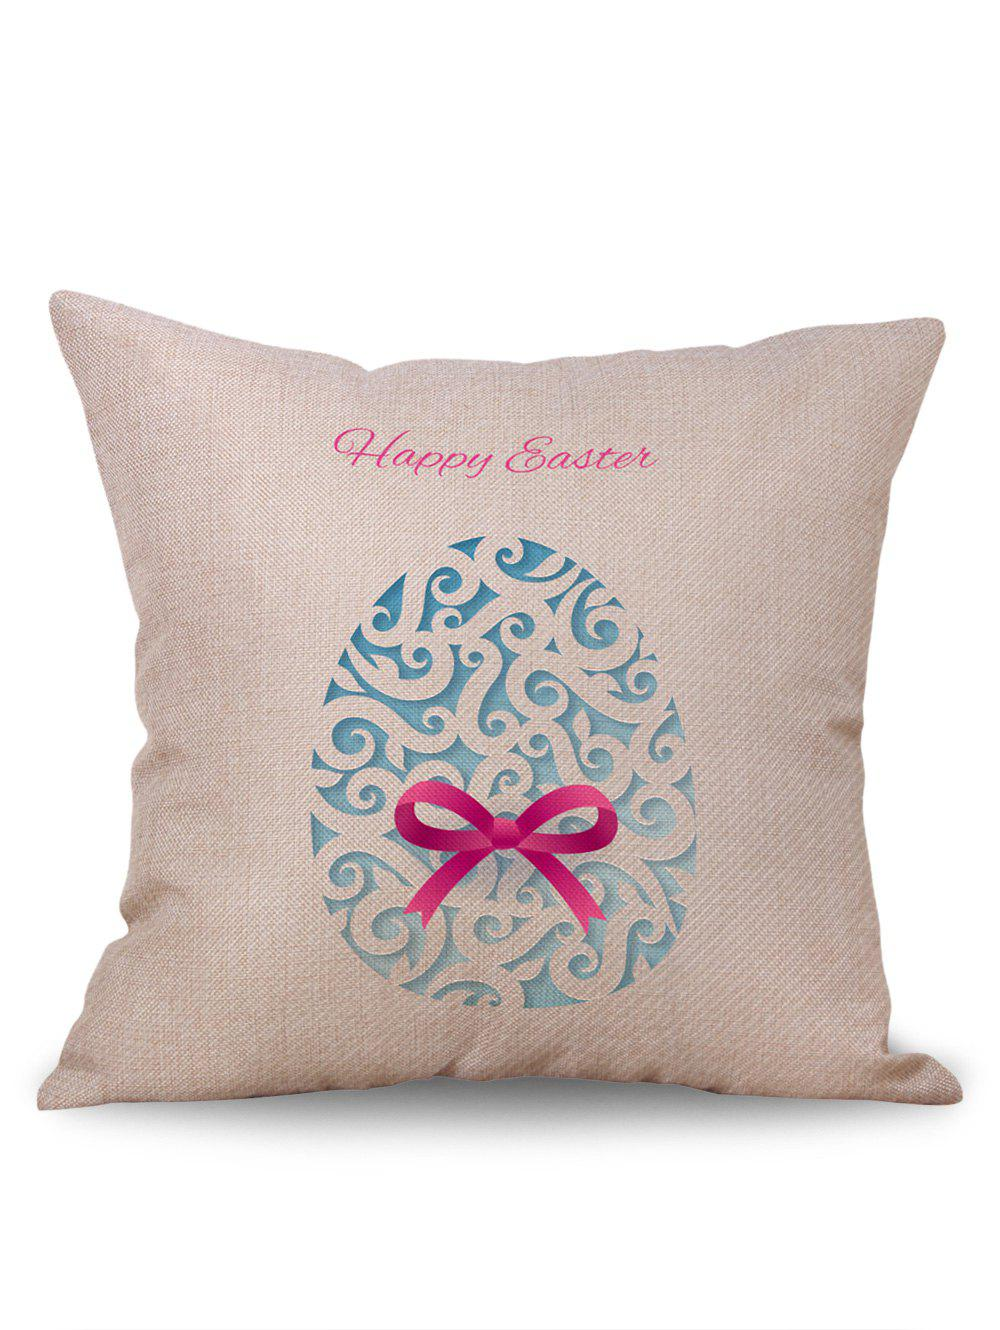 Egg Easter Knot Pillow Cover - BLUE W18 INCH * L18 INCH